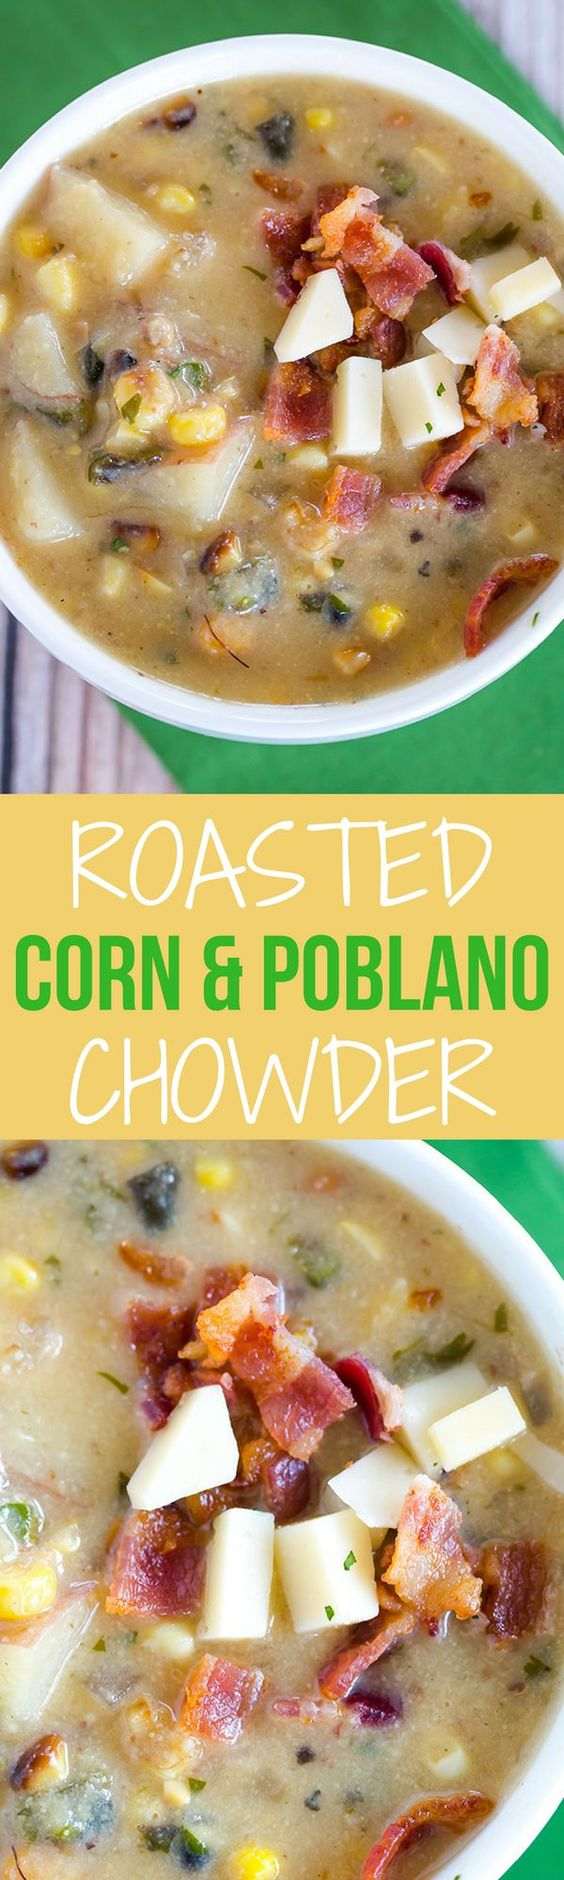 Roasted Corn & Poblano Chowder: Roasted corn and poblano chiles give this summer chowder a powerful flavor punch. It's never too…